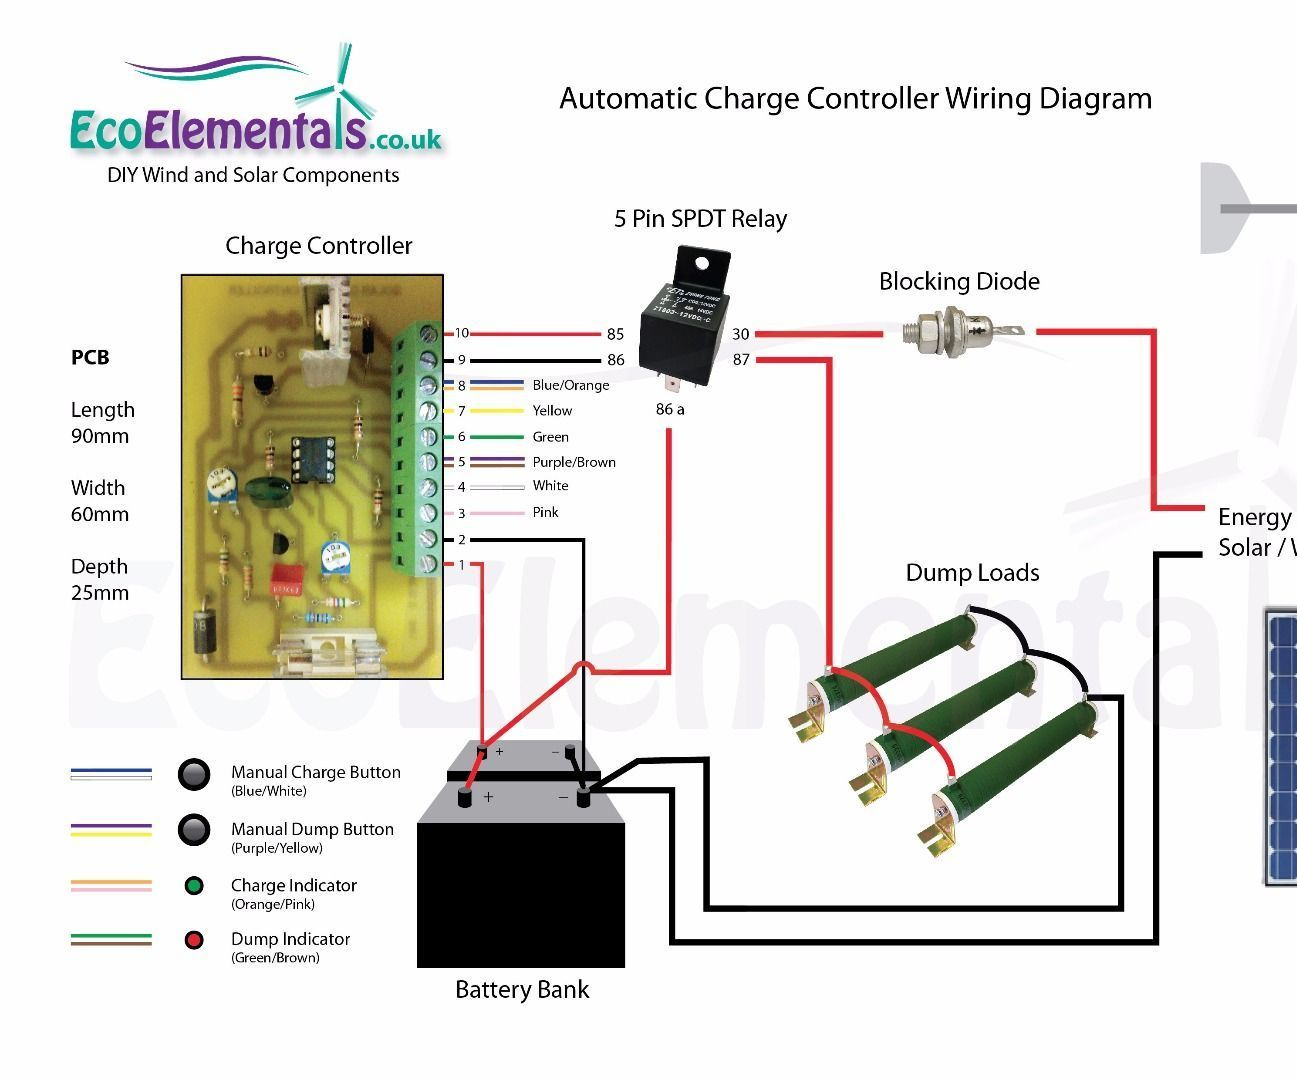 charge controller wiring diagram for diy wind turbine or solar rh pinterest com